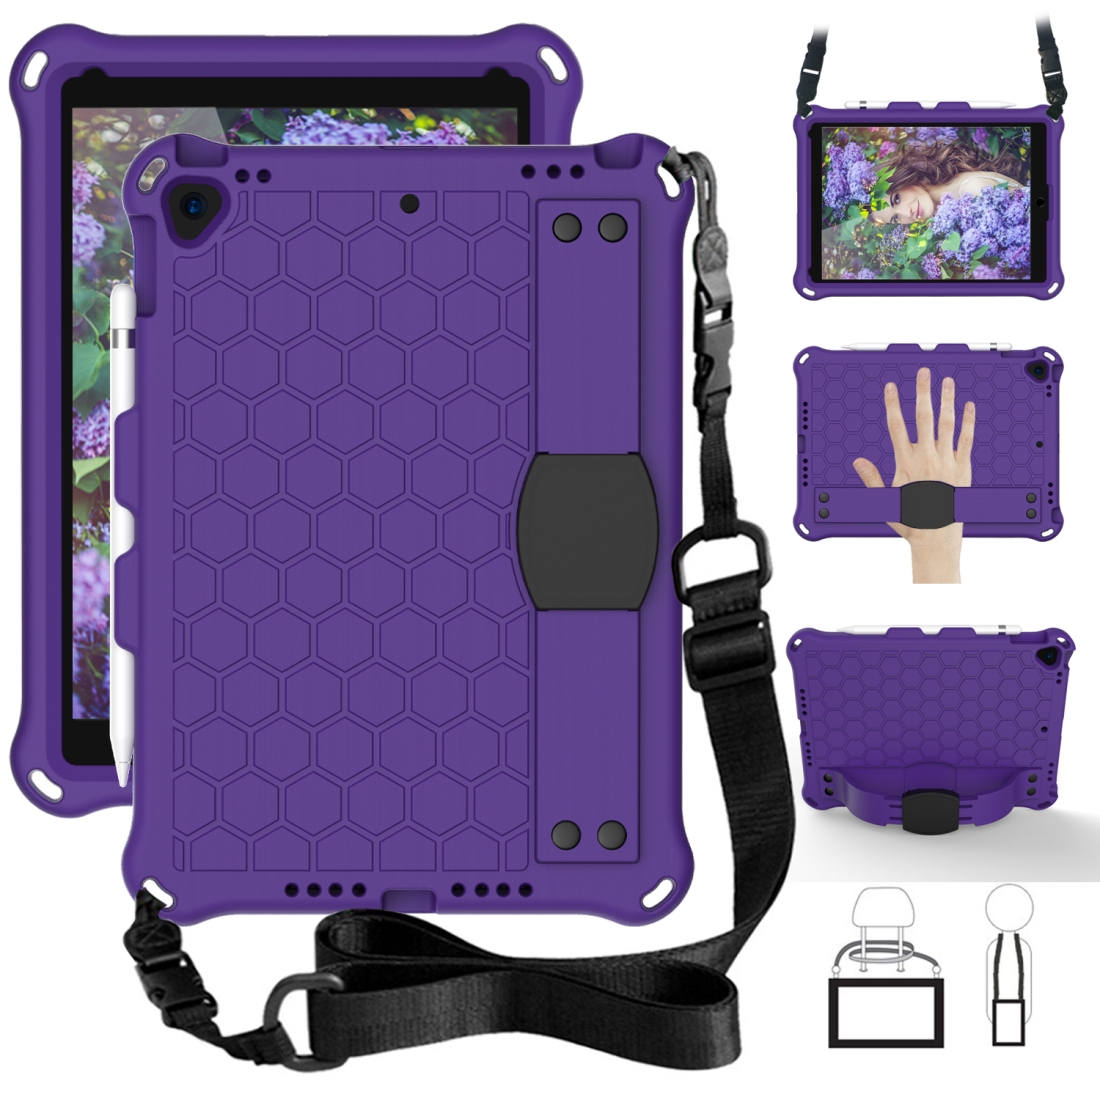 iPad Air 2 Case (2019)/ 10.5 Honeycomb Design Four Corner Protective Shell + Straps (Purple/Black)